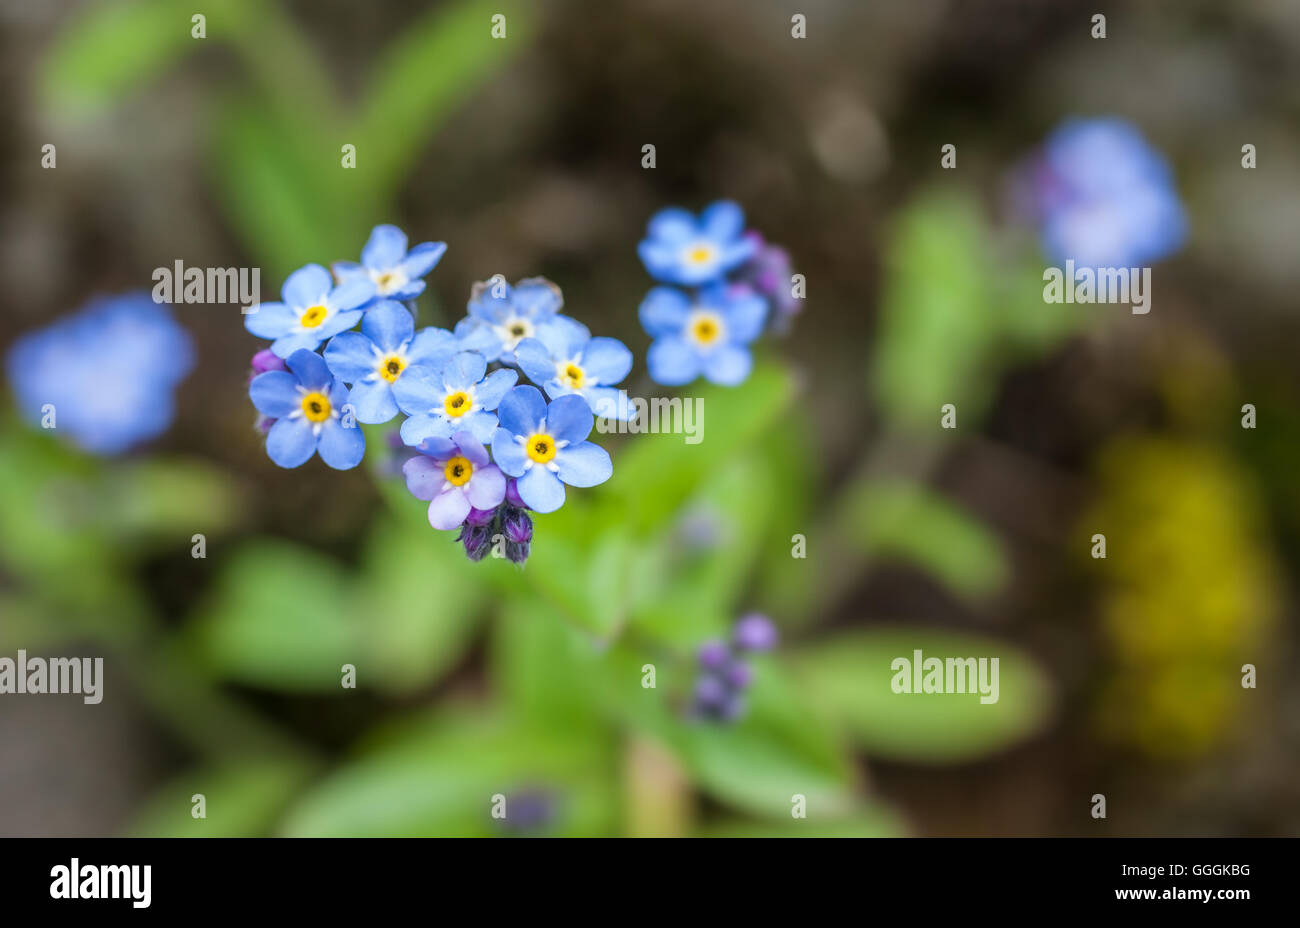 botany, forget-me-not (Myosotis) in the mountains in South Tyrol, Italy, Additional-Rights-Clearance-Info-Not-Available Stock Photo